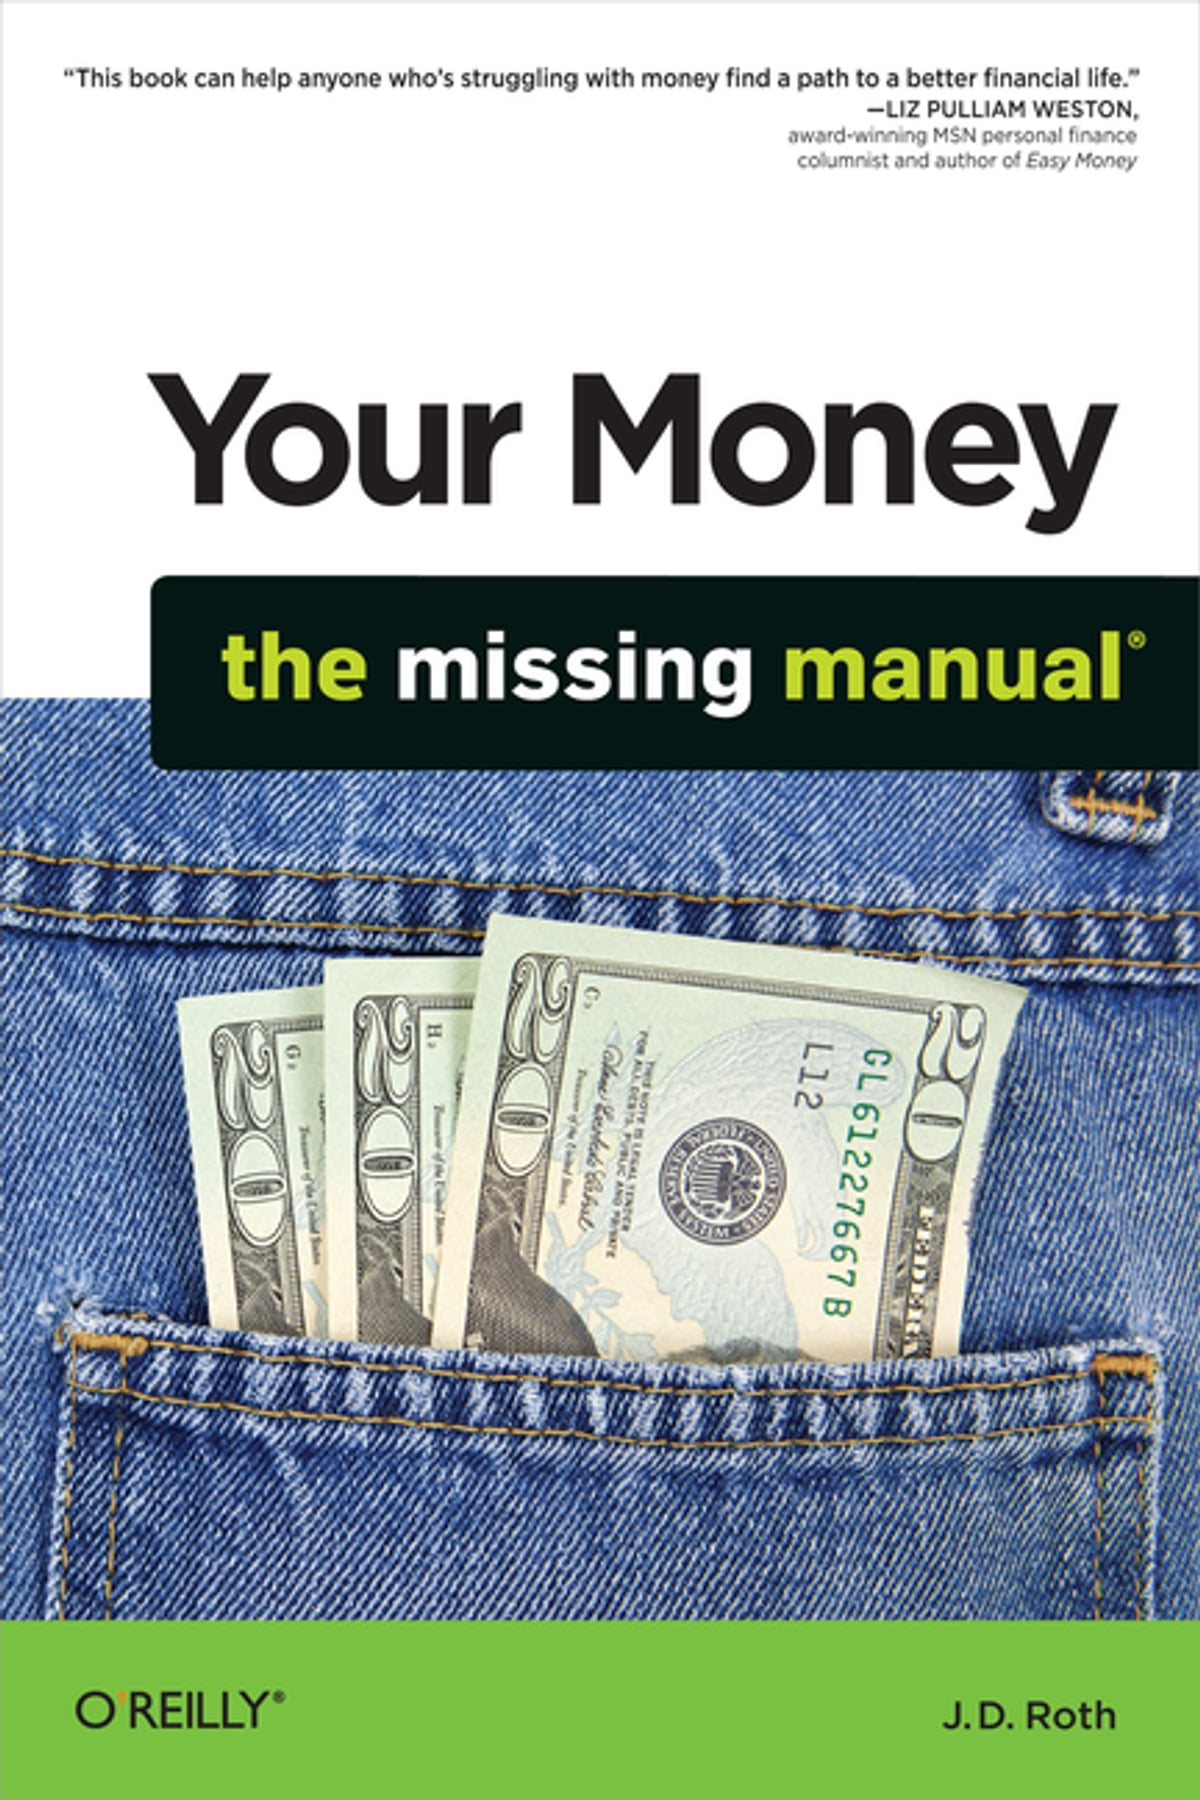 Your Money: The Missing Manual eBook by J.D. Roth - 9781449388881 | Rakuten  Kobo United States